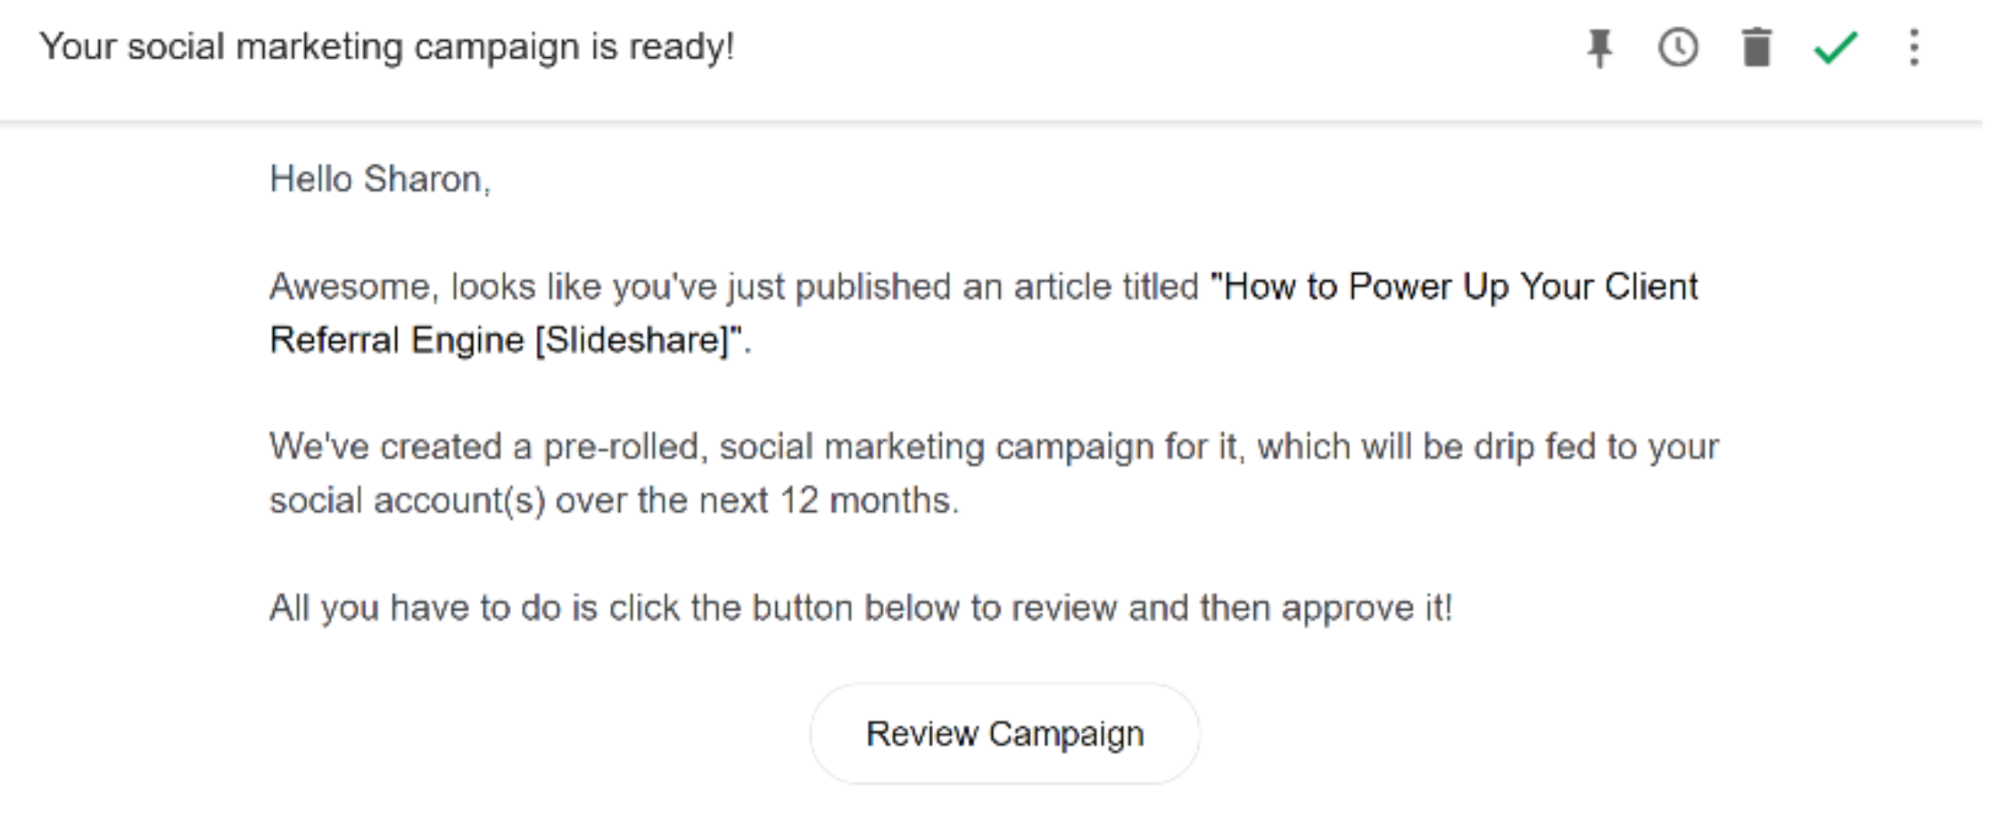 Review your social media campaign in Missinglettr